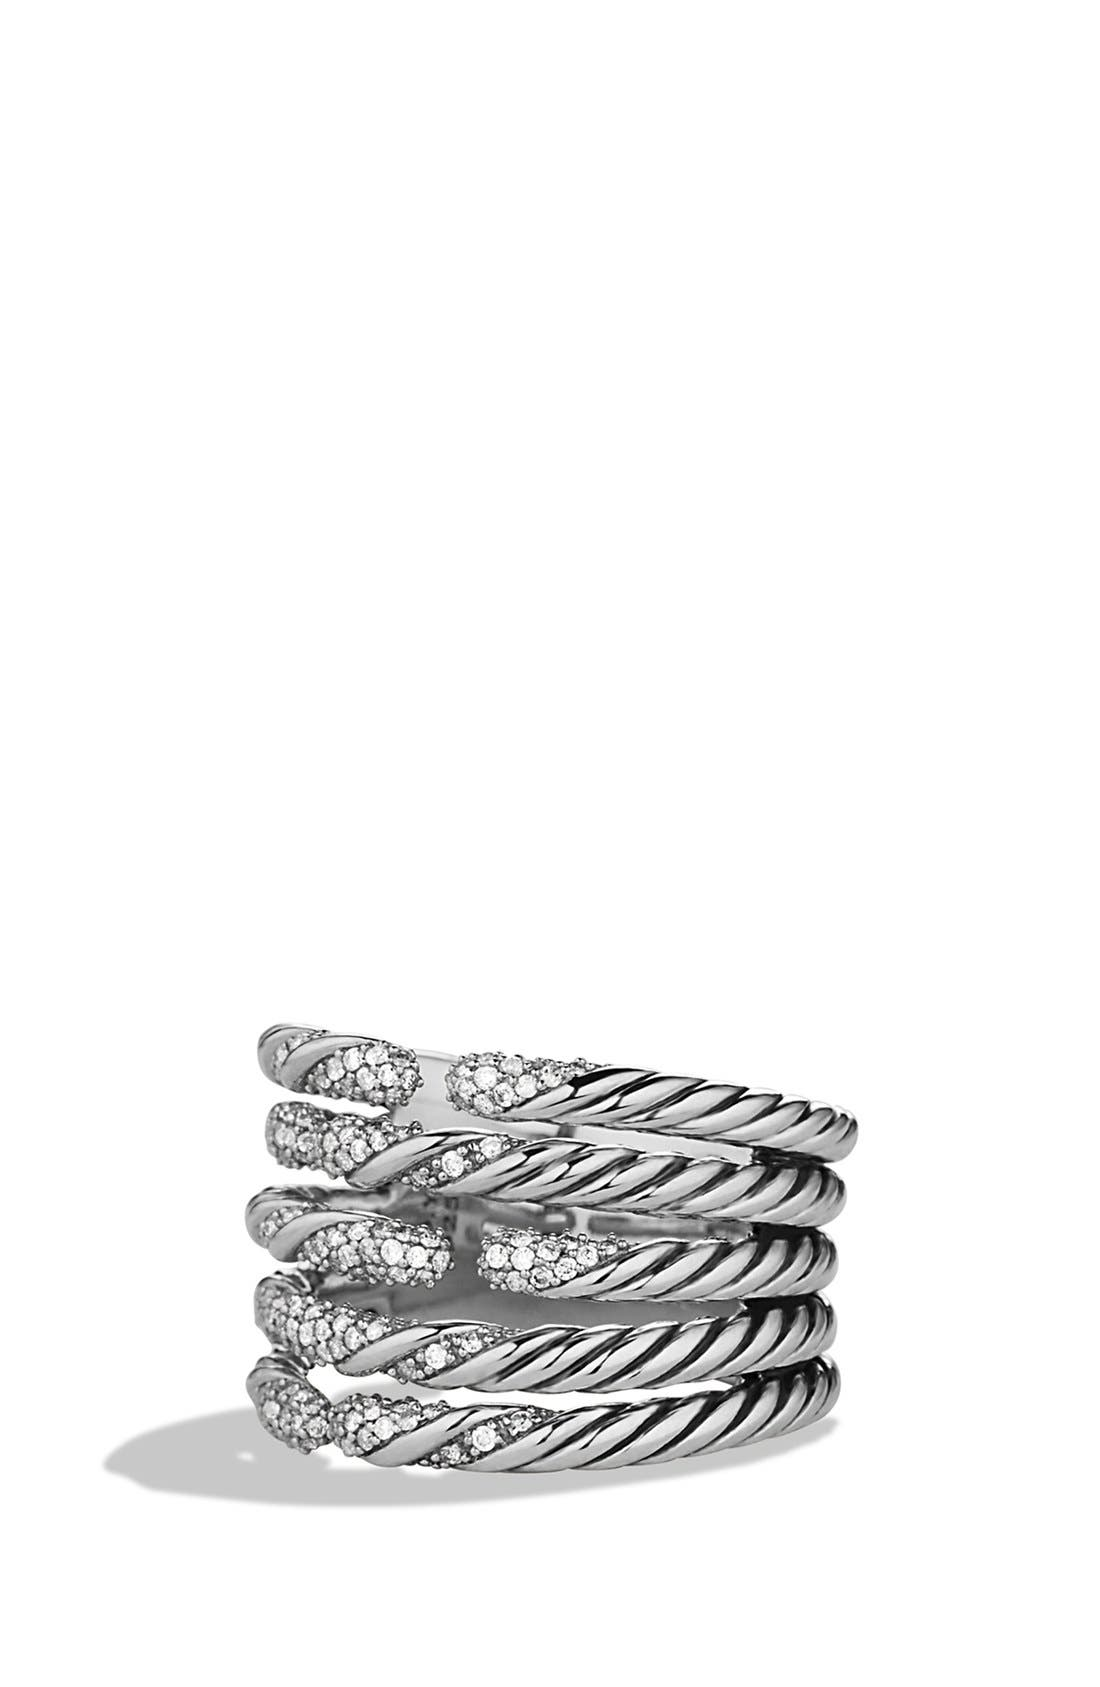 Main Image - David Yurman 'Willow' Five-Row Ring with Diamonds